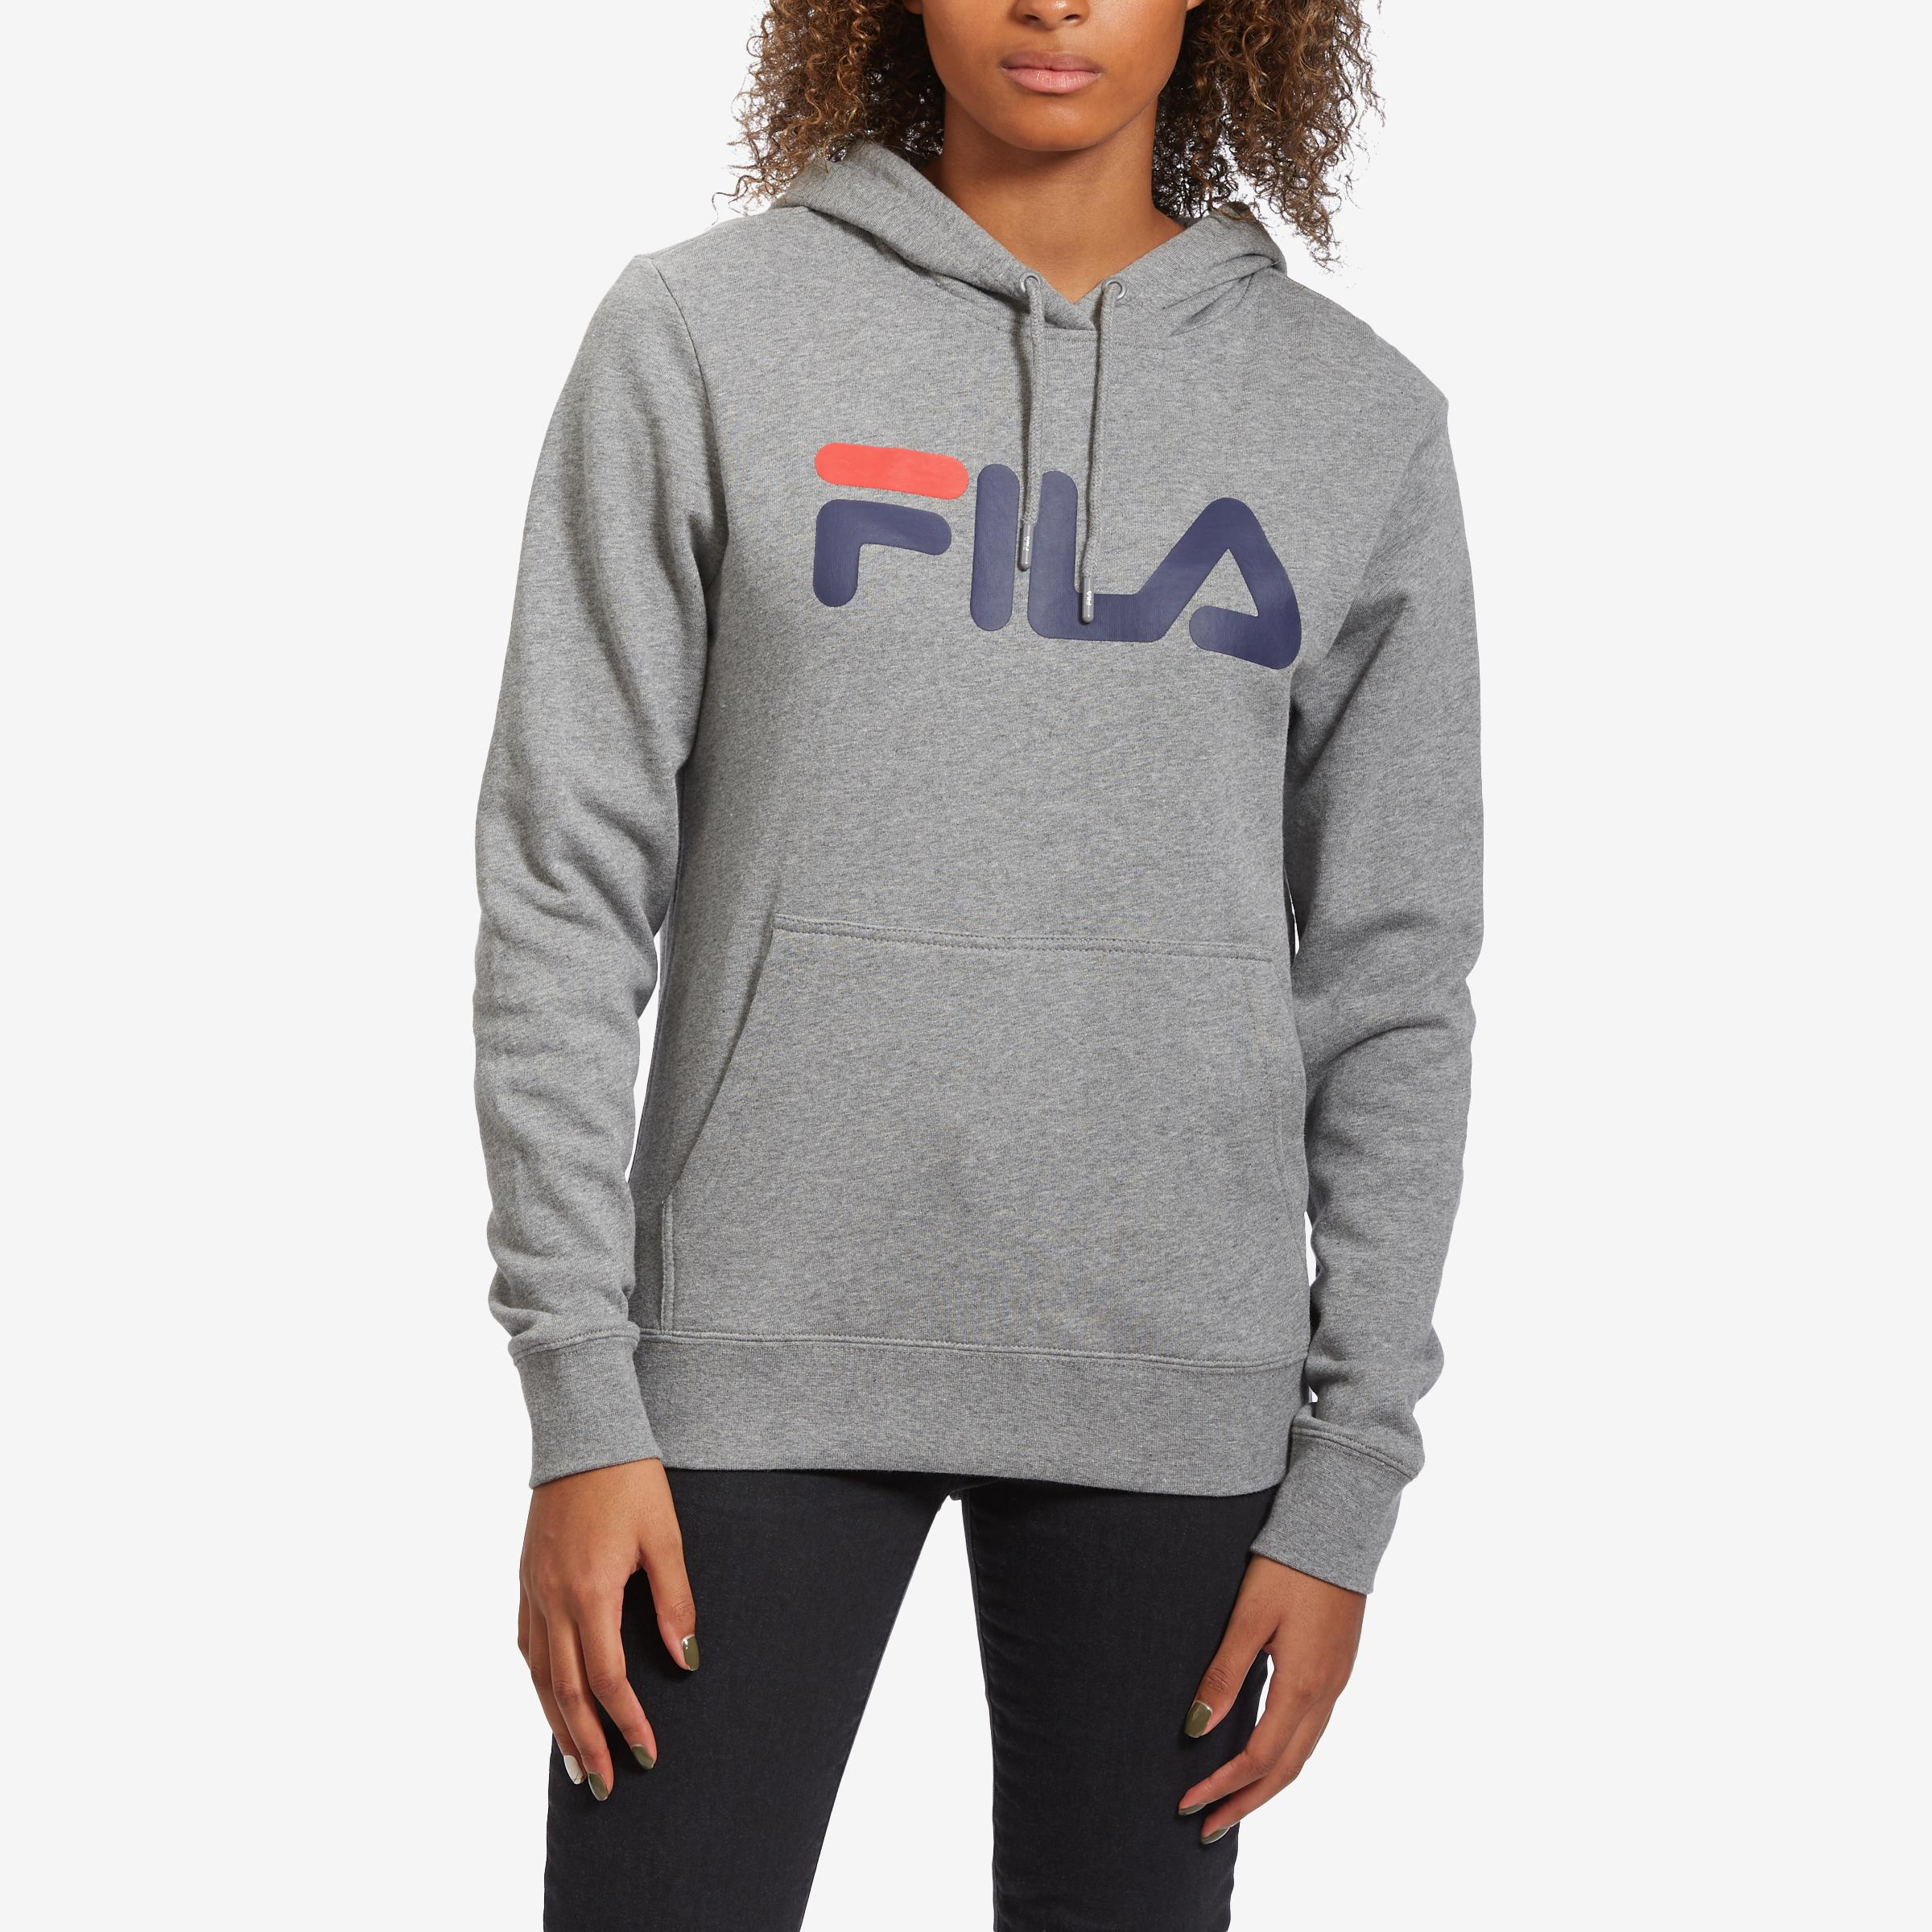 Women's Lucy Pullover Hoodie